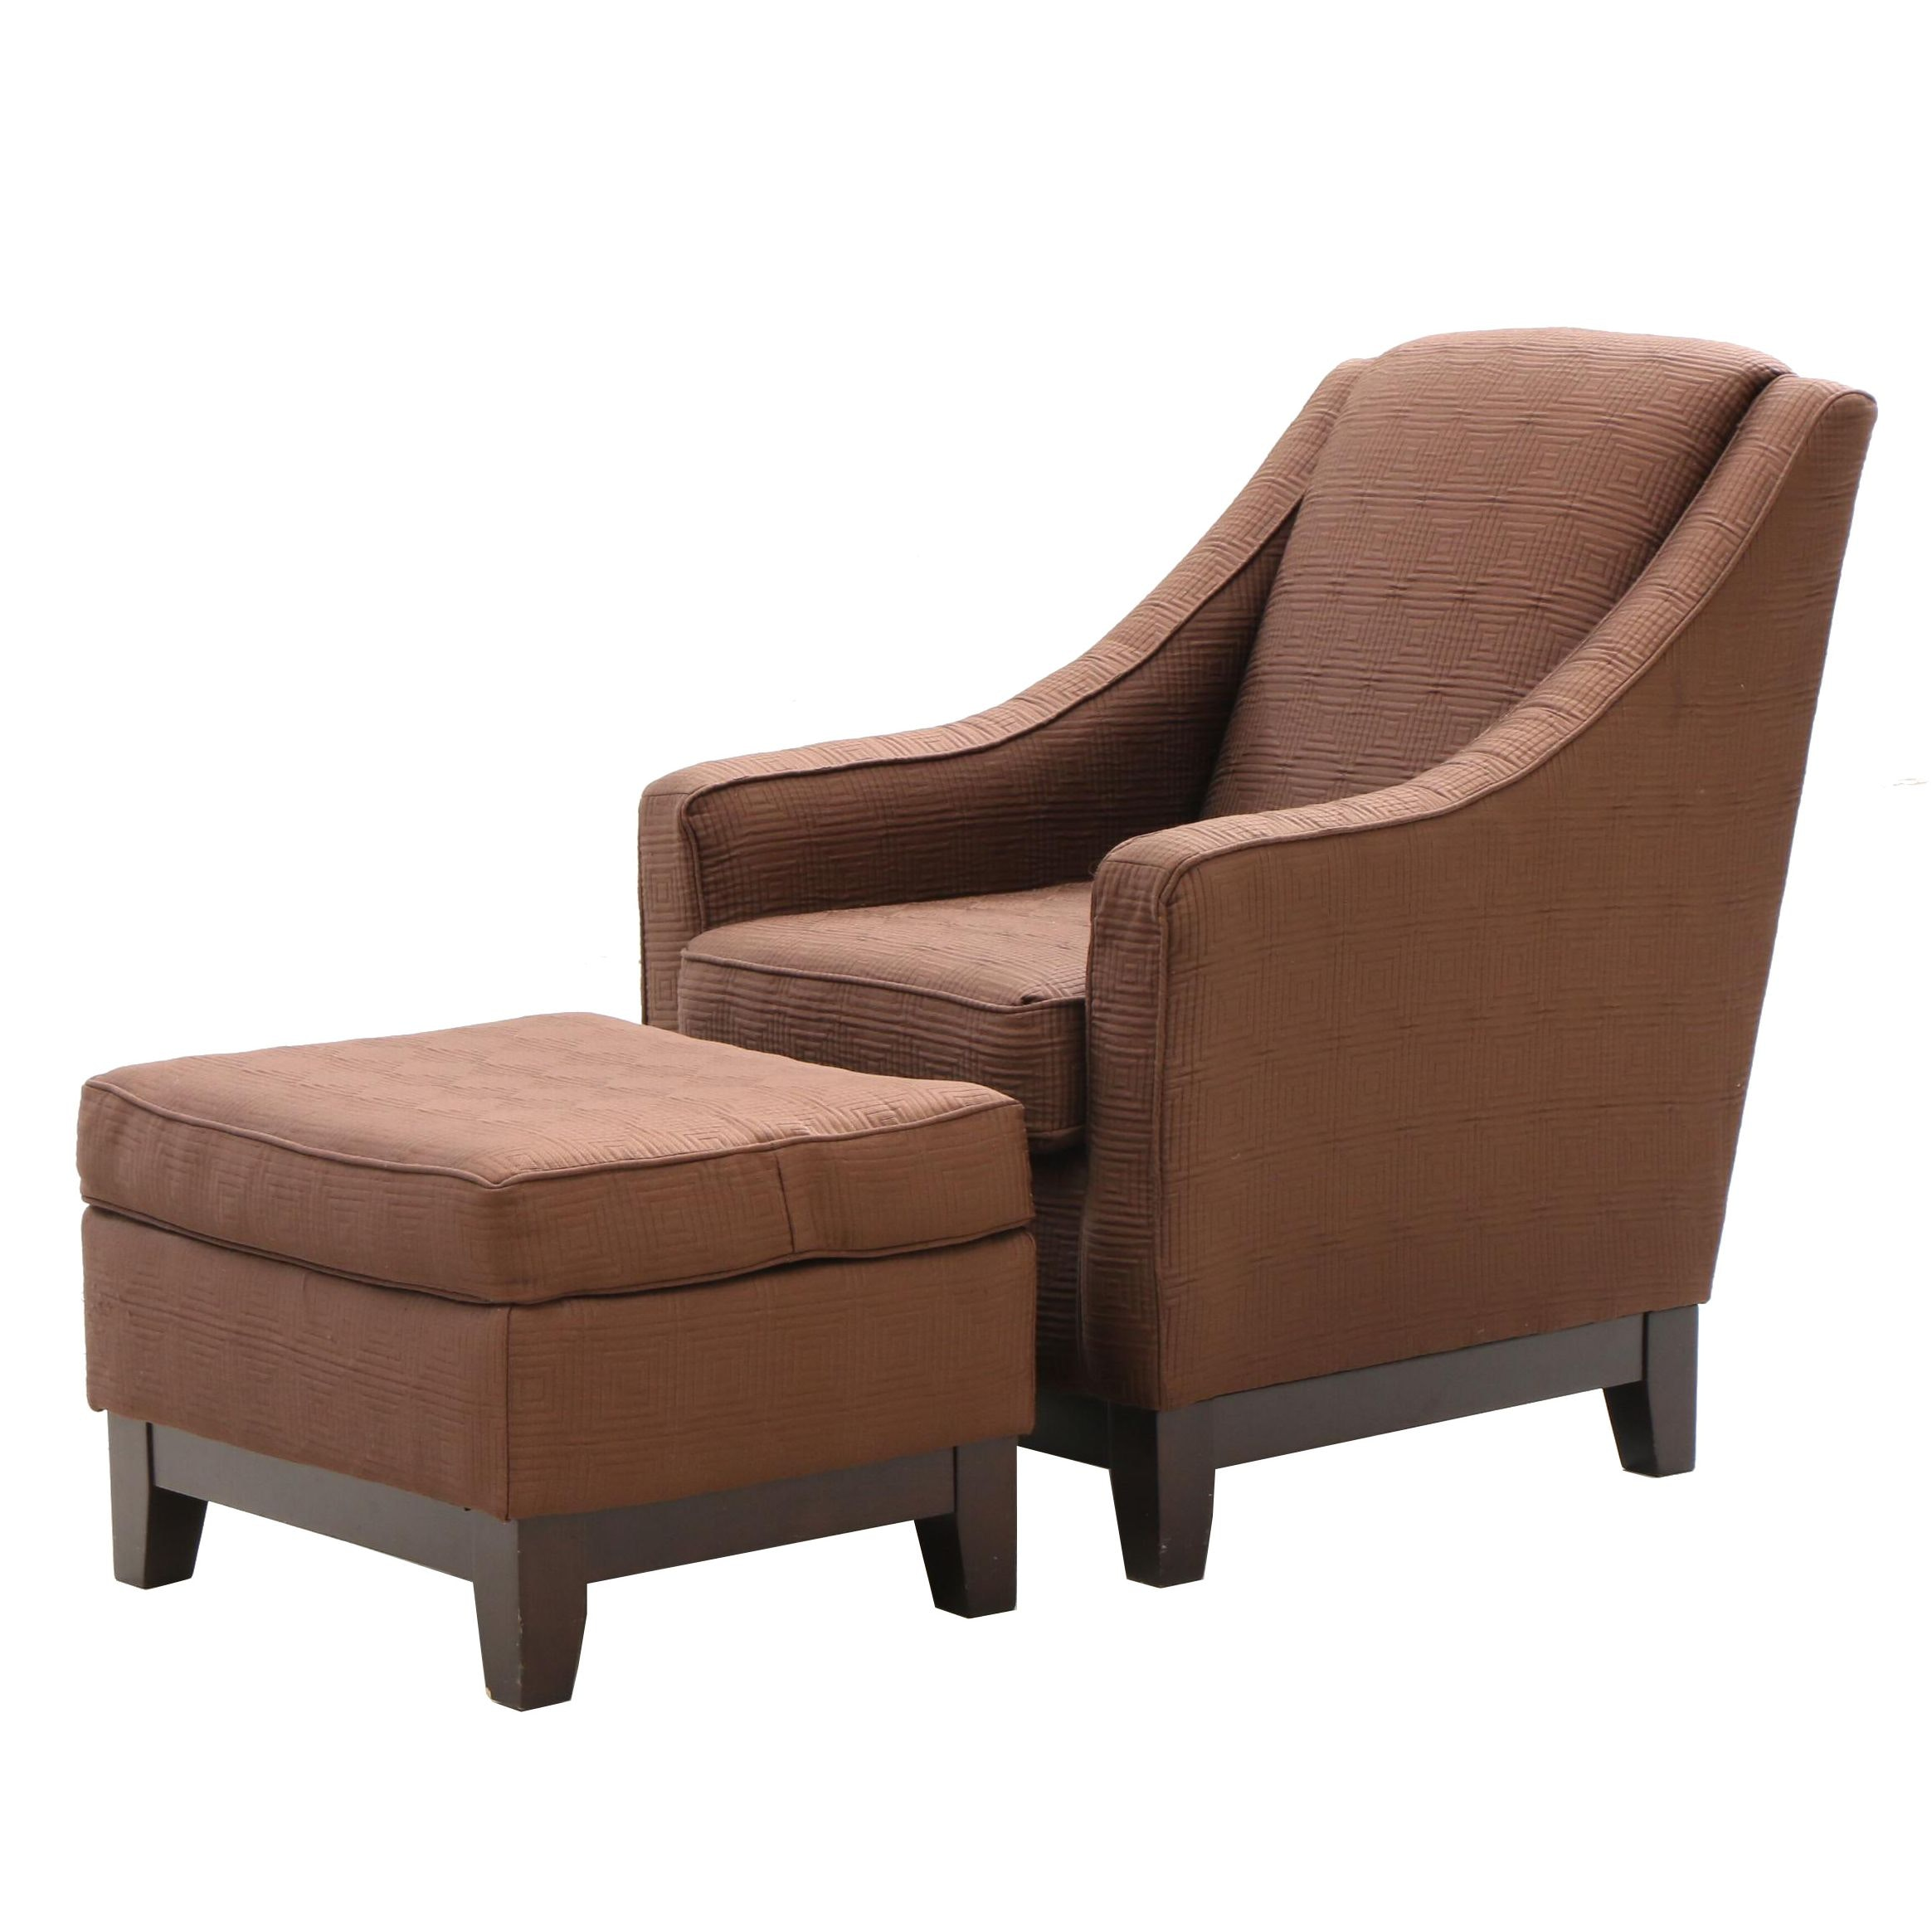 Modernist Arm Chair and Ottoman by Best Chairs, 2010's